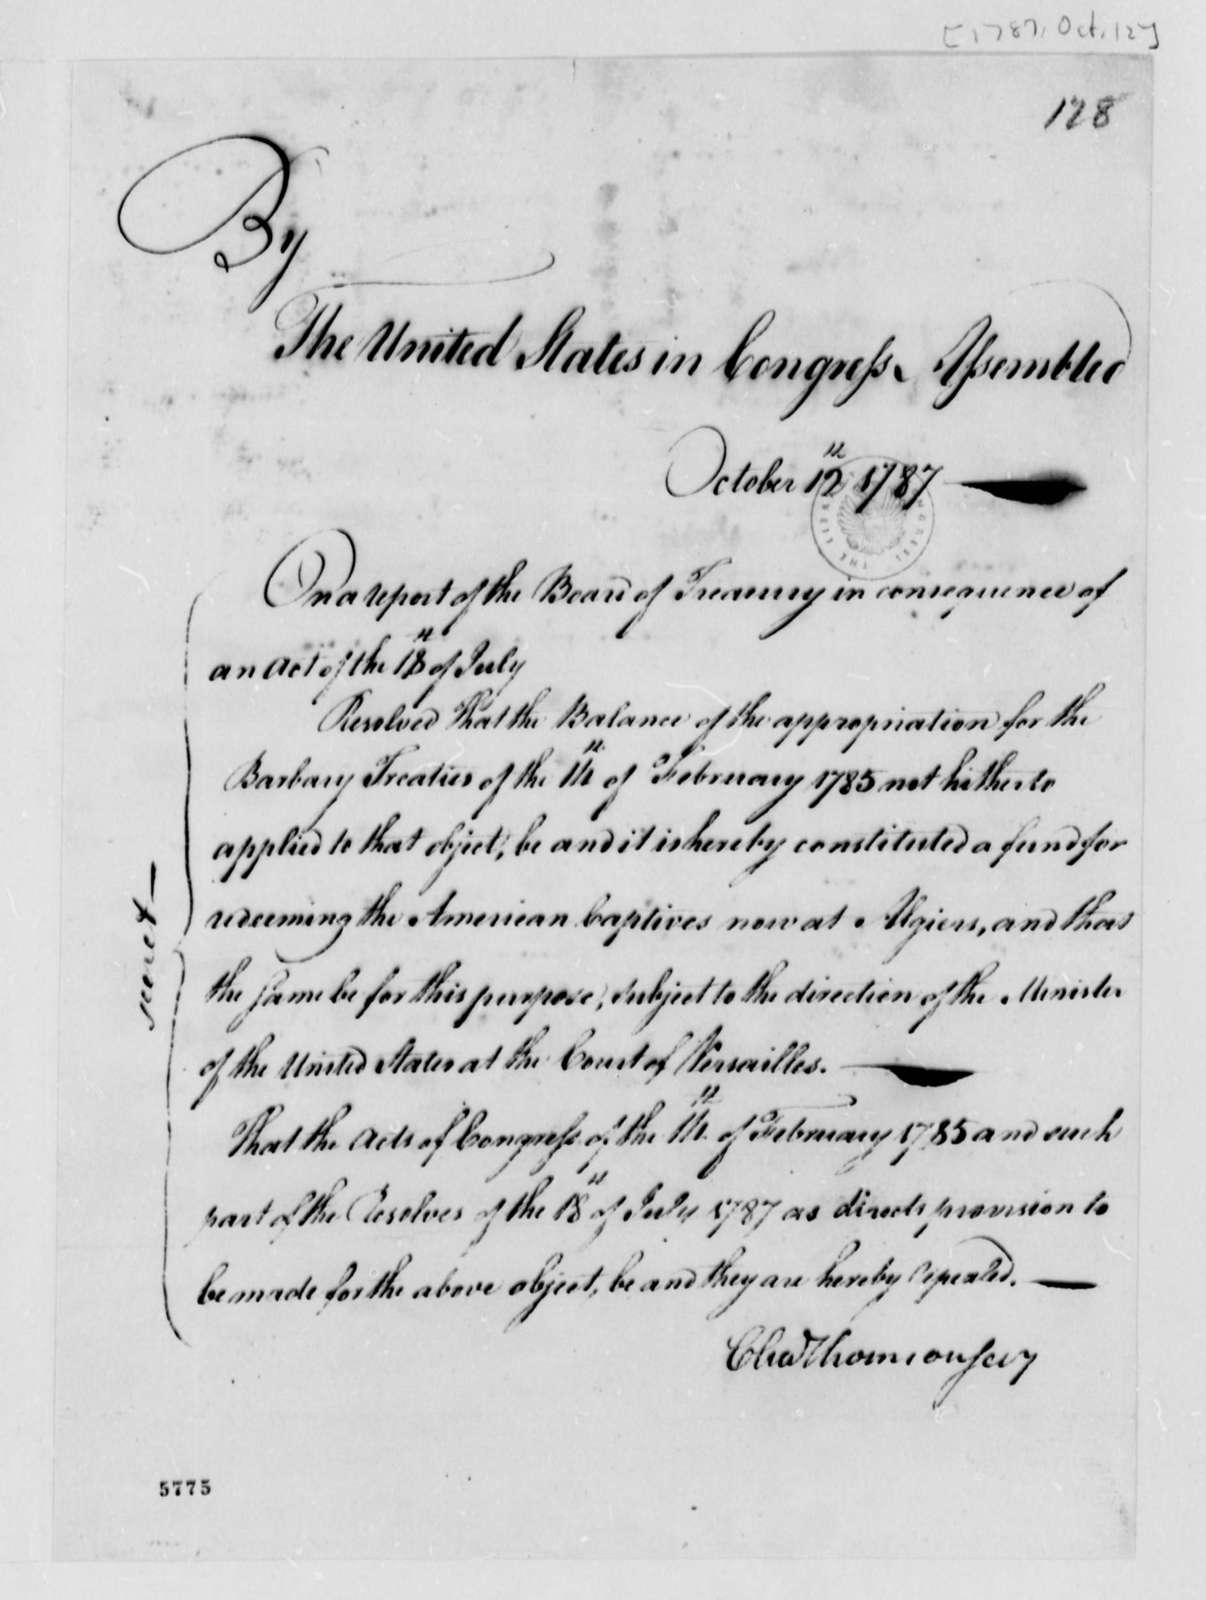 United States Congress, October 12, 1787, Resolution on American Captives in Algiers